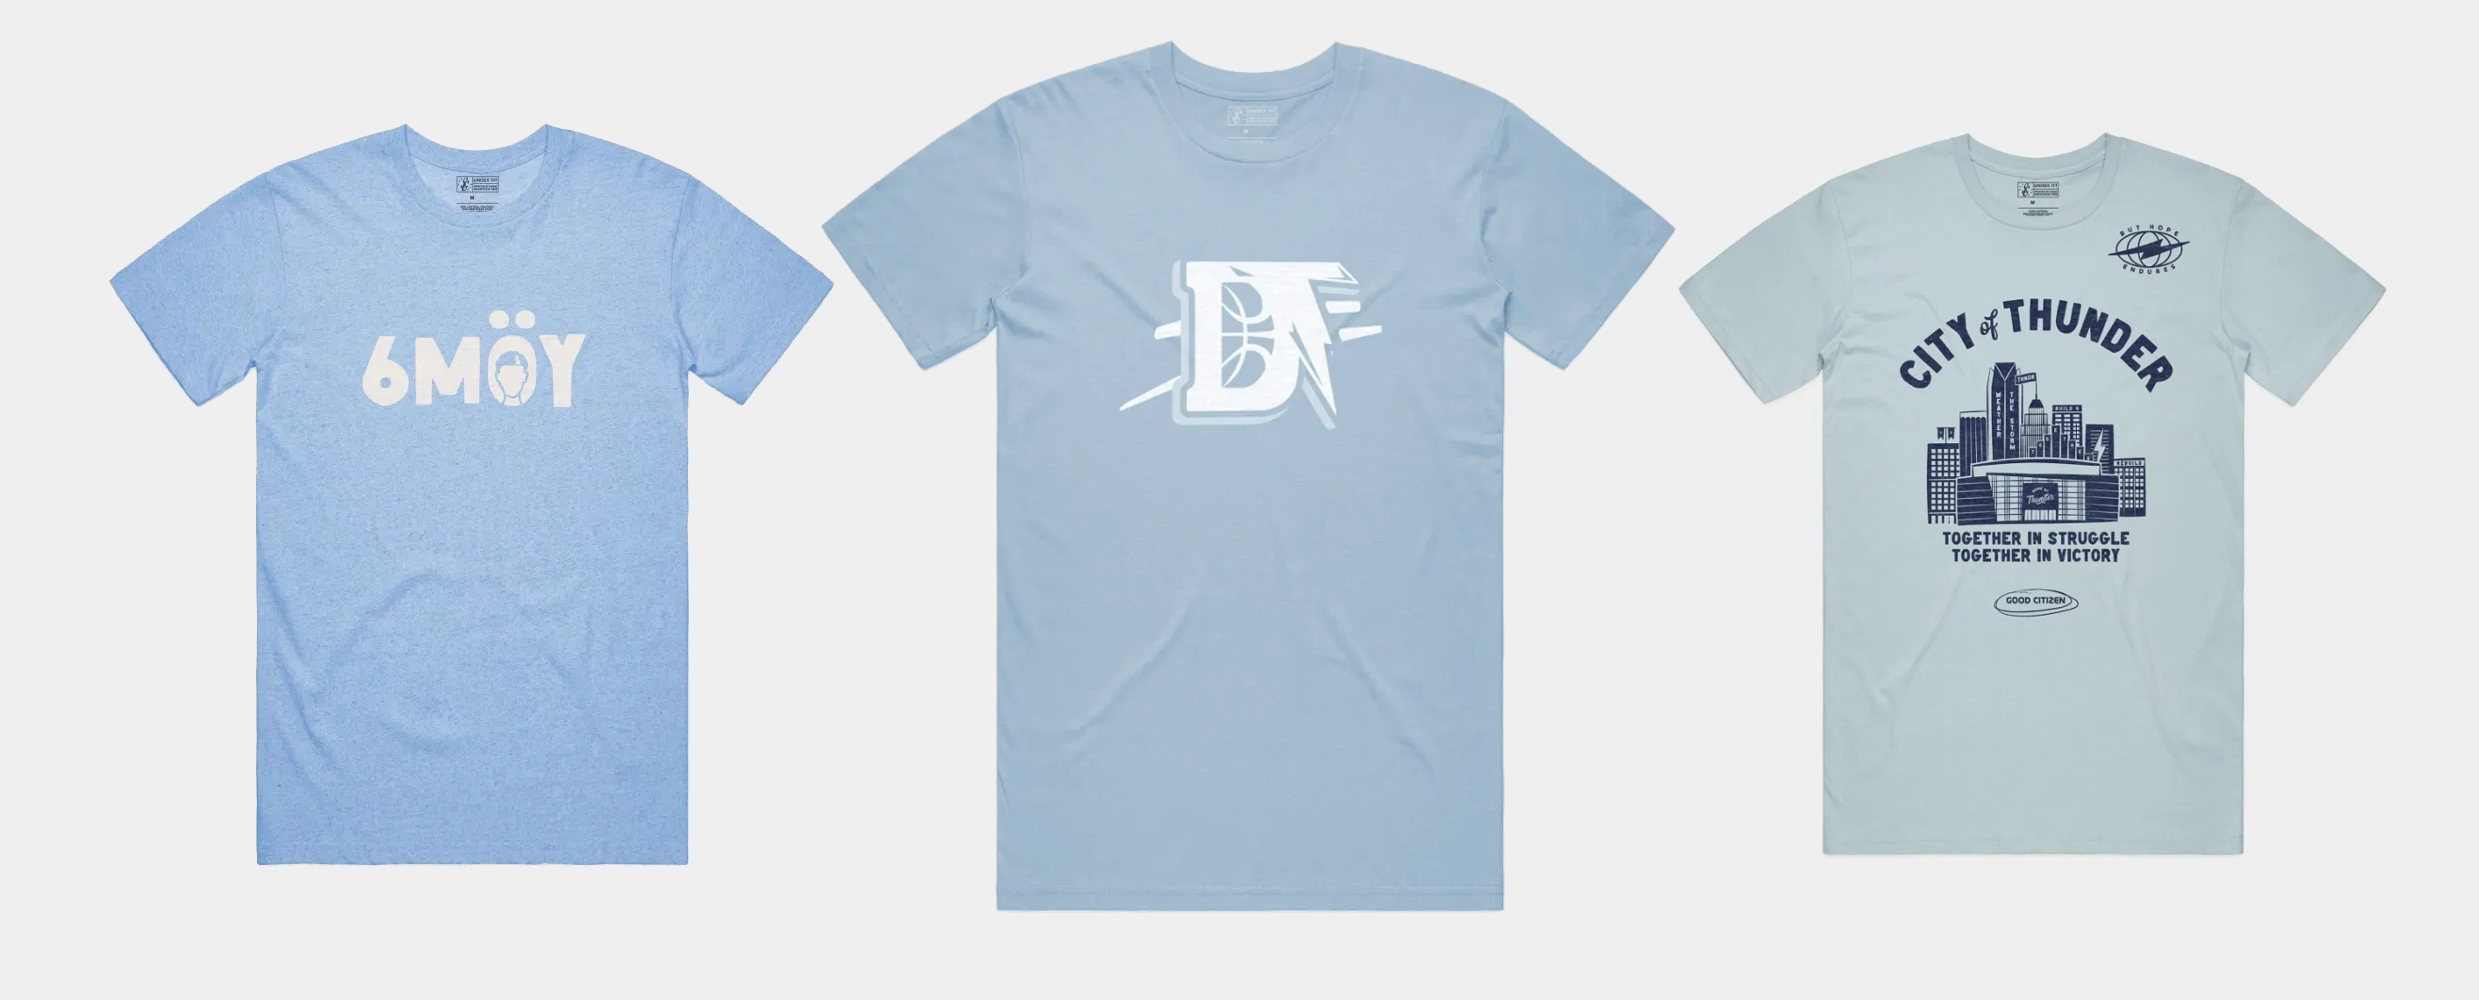 Announcing the Daily Thunder x Shop Good T-Shirt Collection